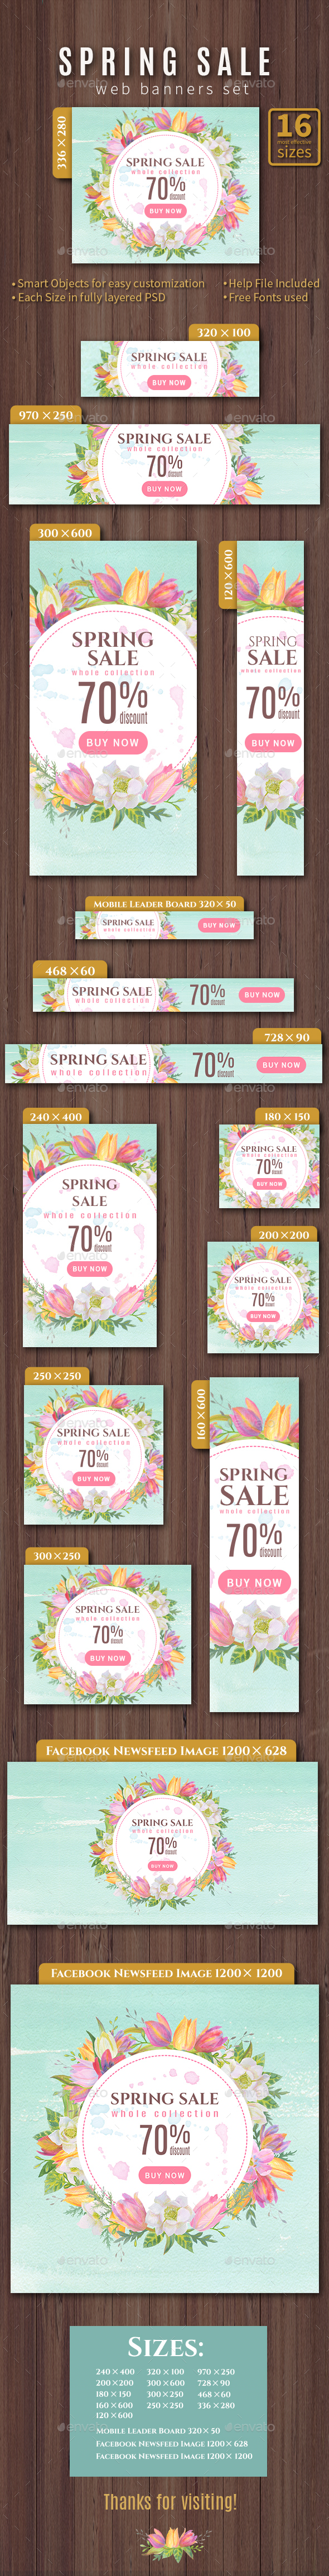 Spring-Summer Sale web banners set - Banners & Ads Web Elements